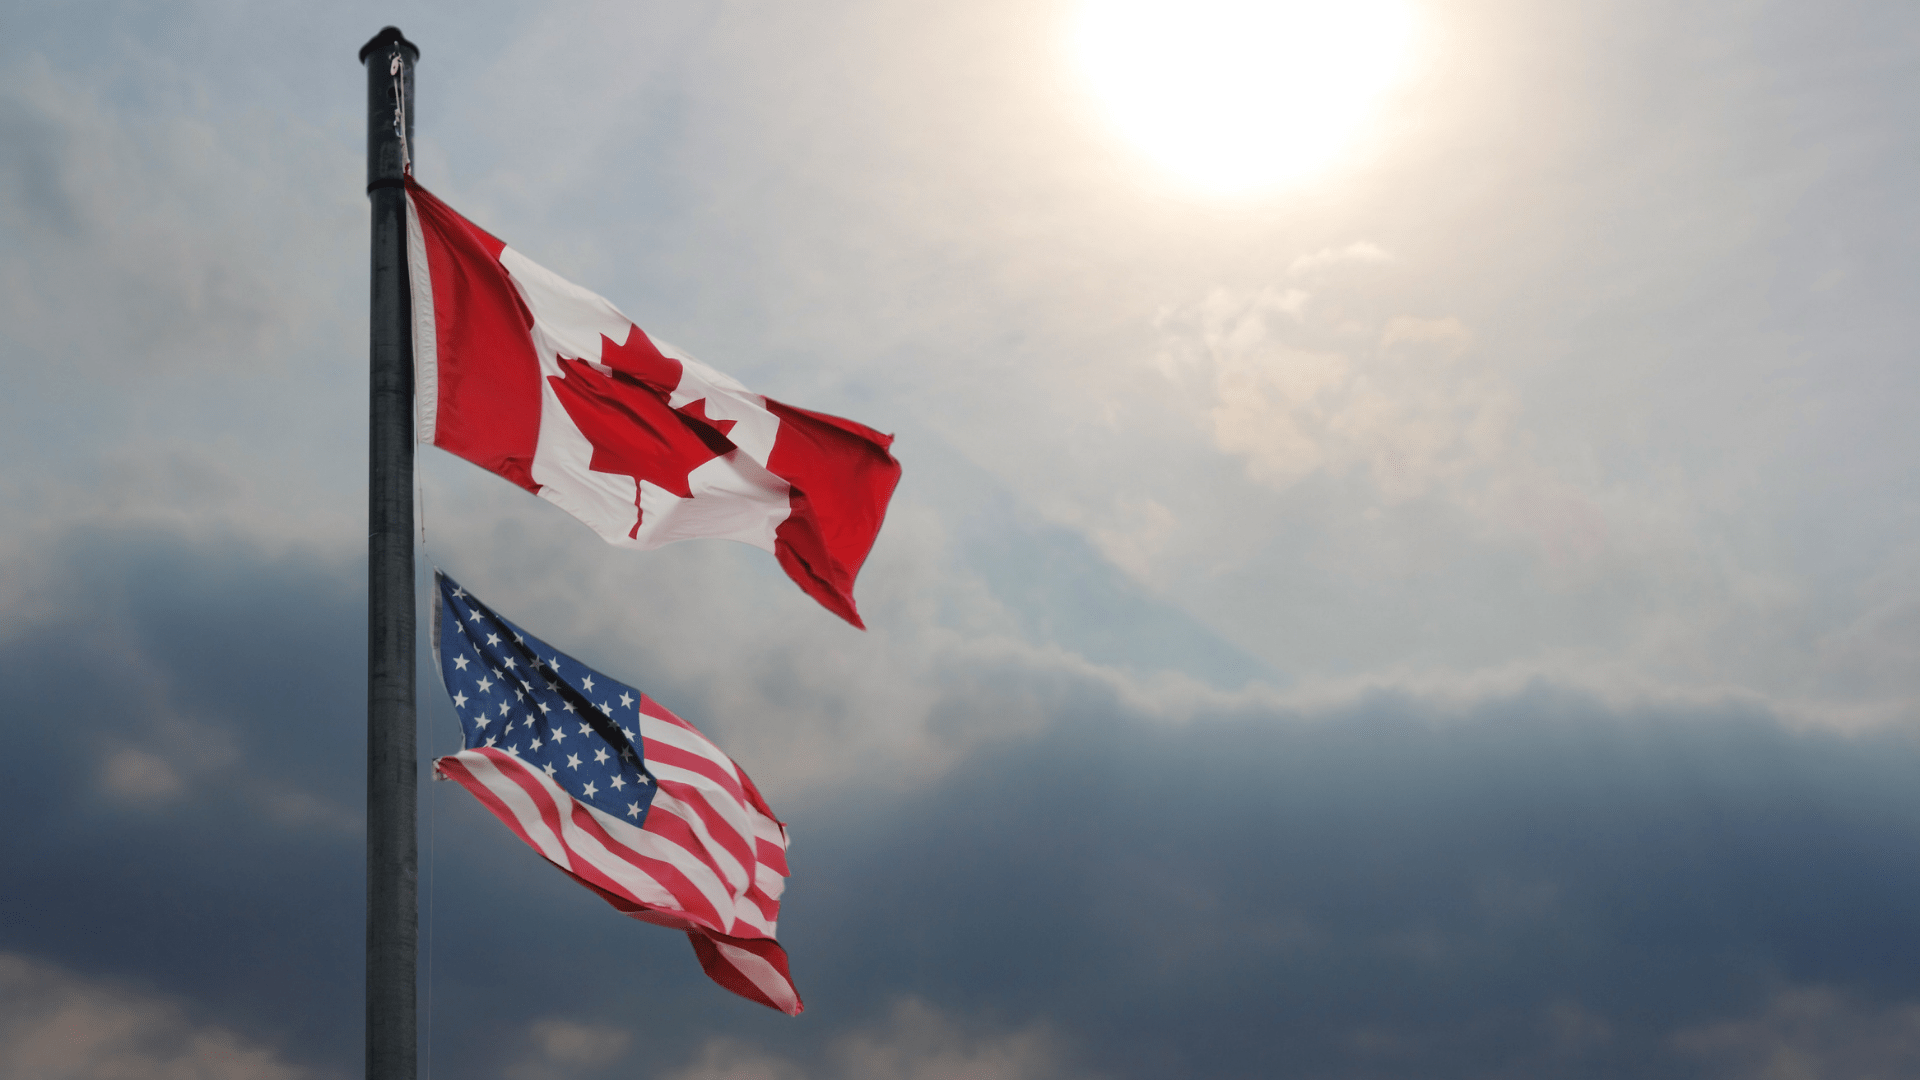 U.S. America immigrants Canada immigration